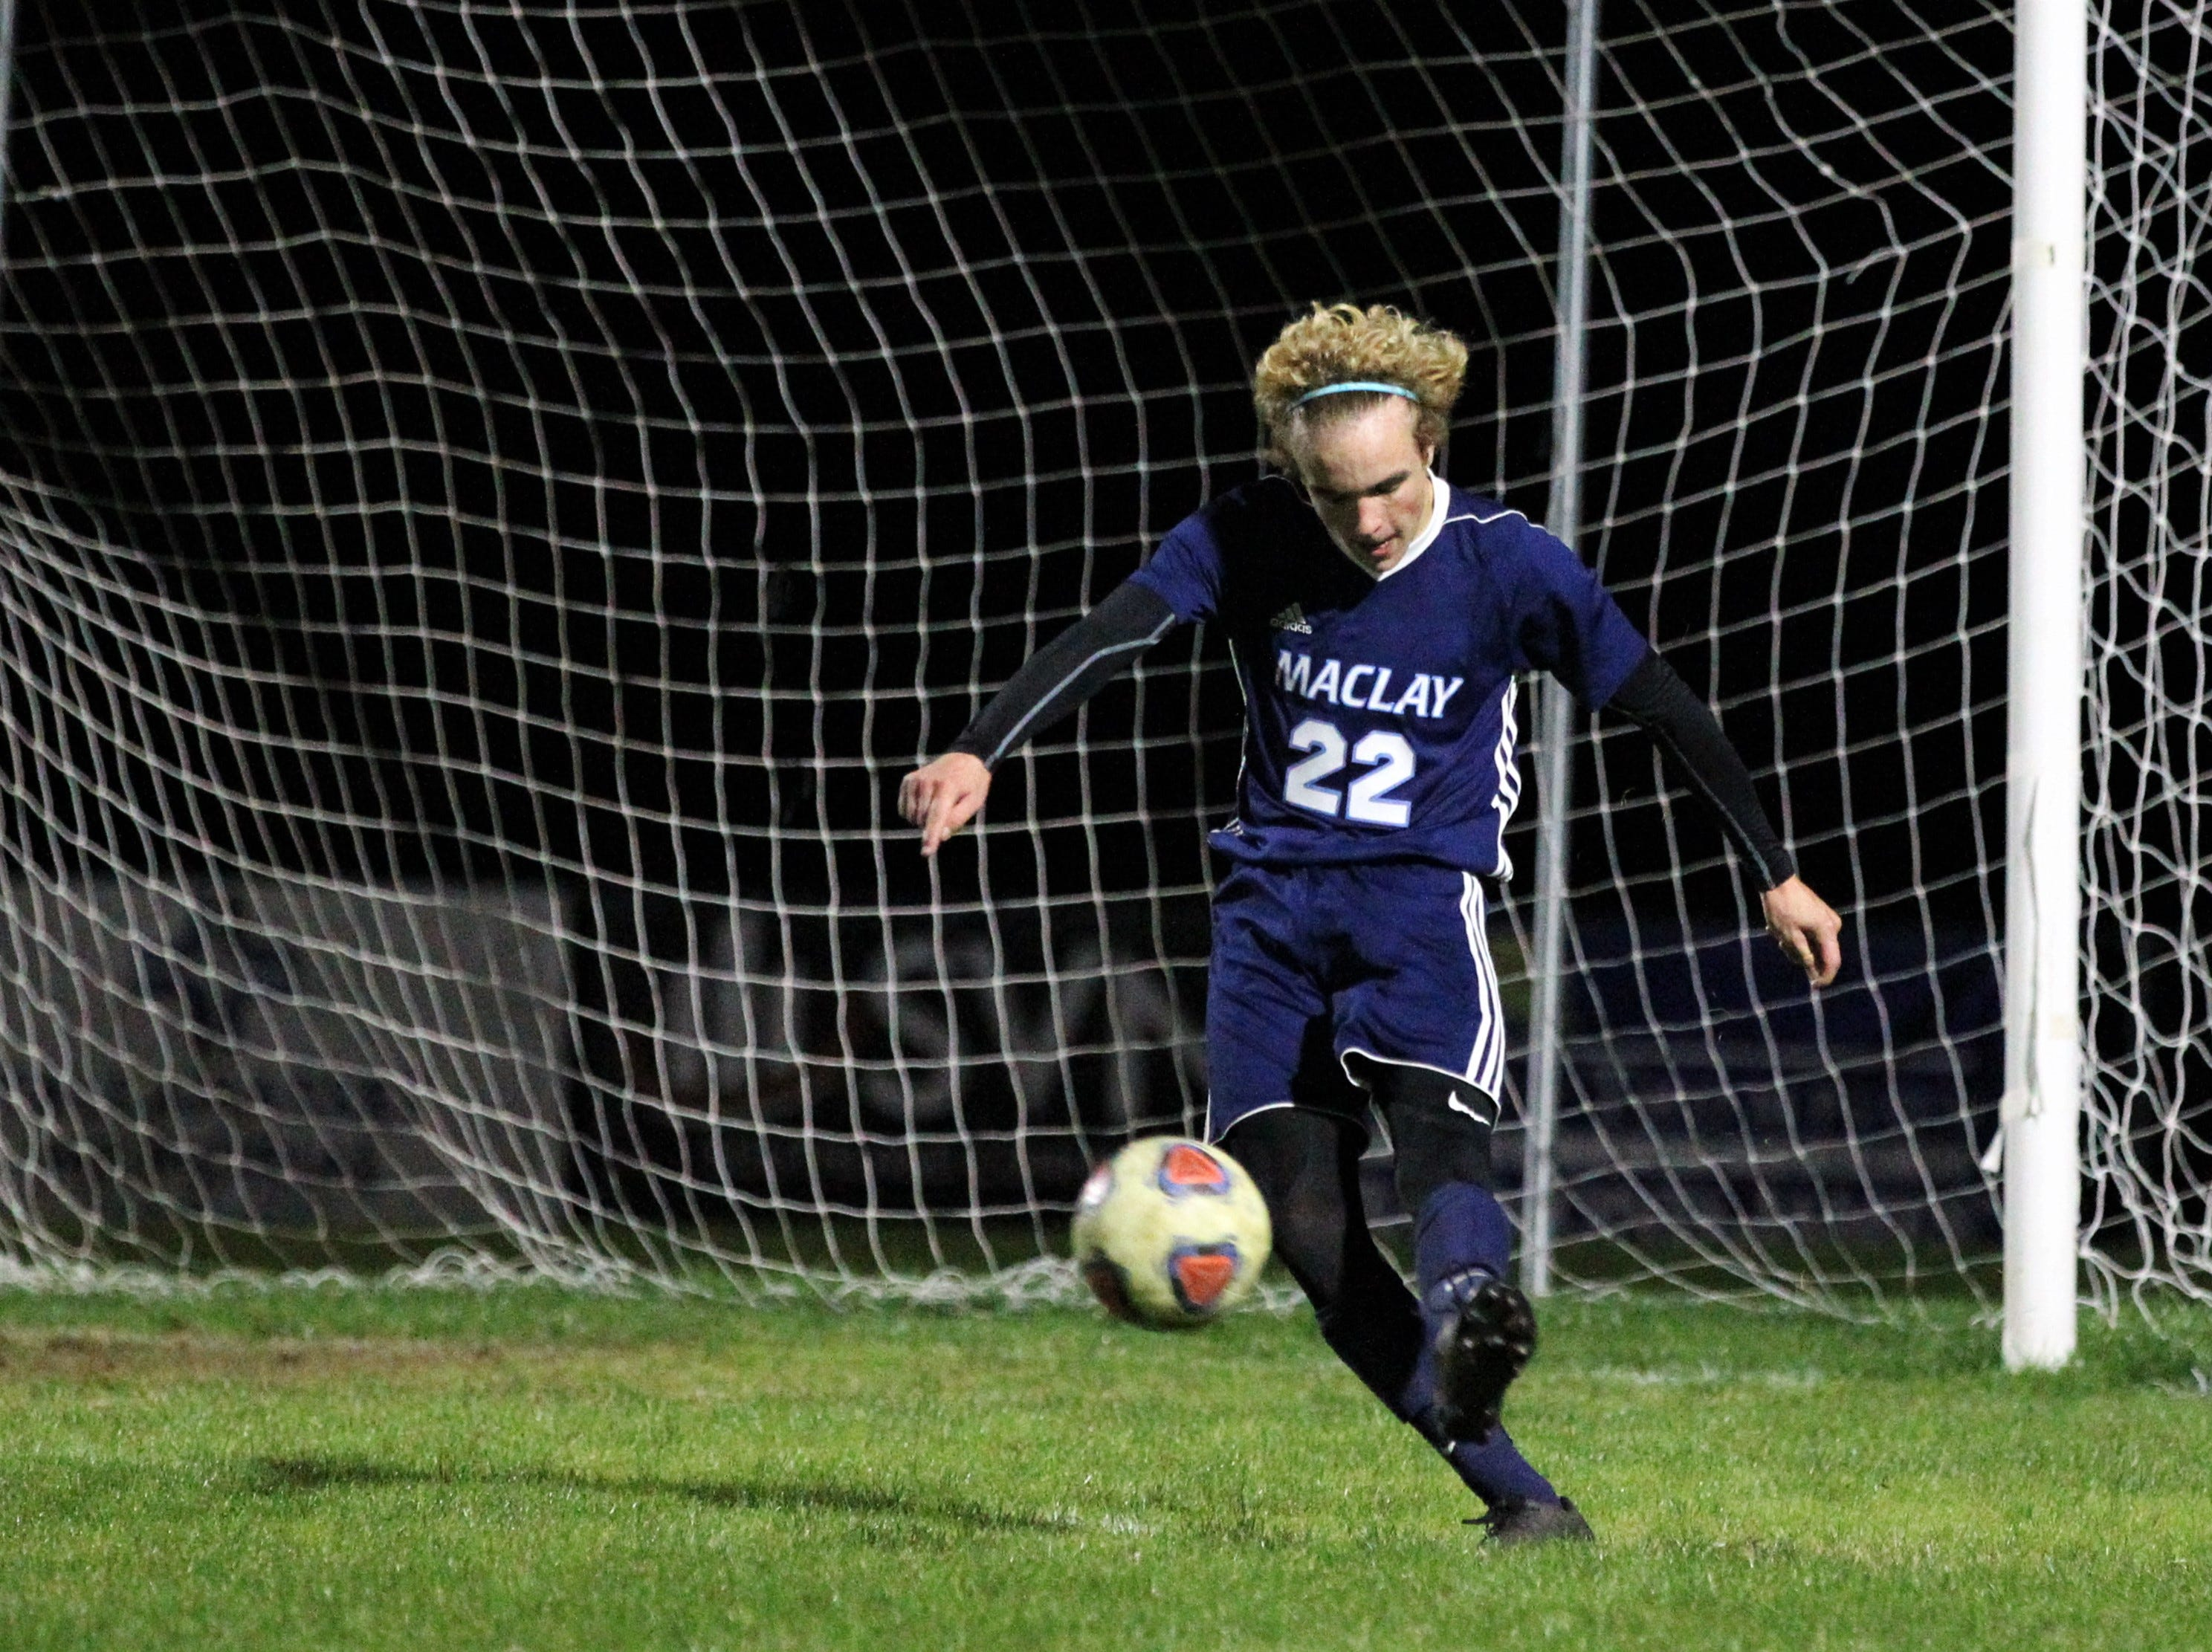 Maclay's Jacob Smith takes a goal kick as Leon's boys soccer team beat Maclay 3-1 on Jan. 22, 2019.